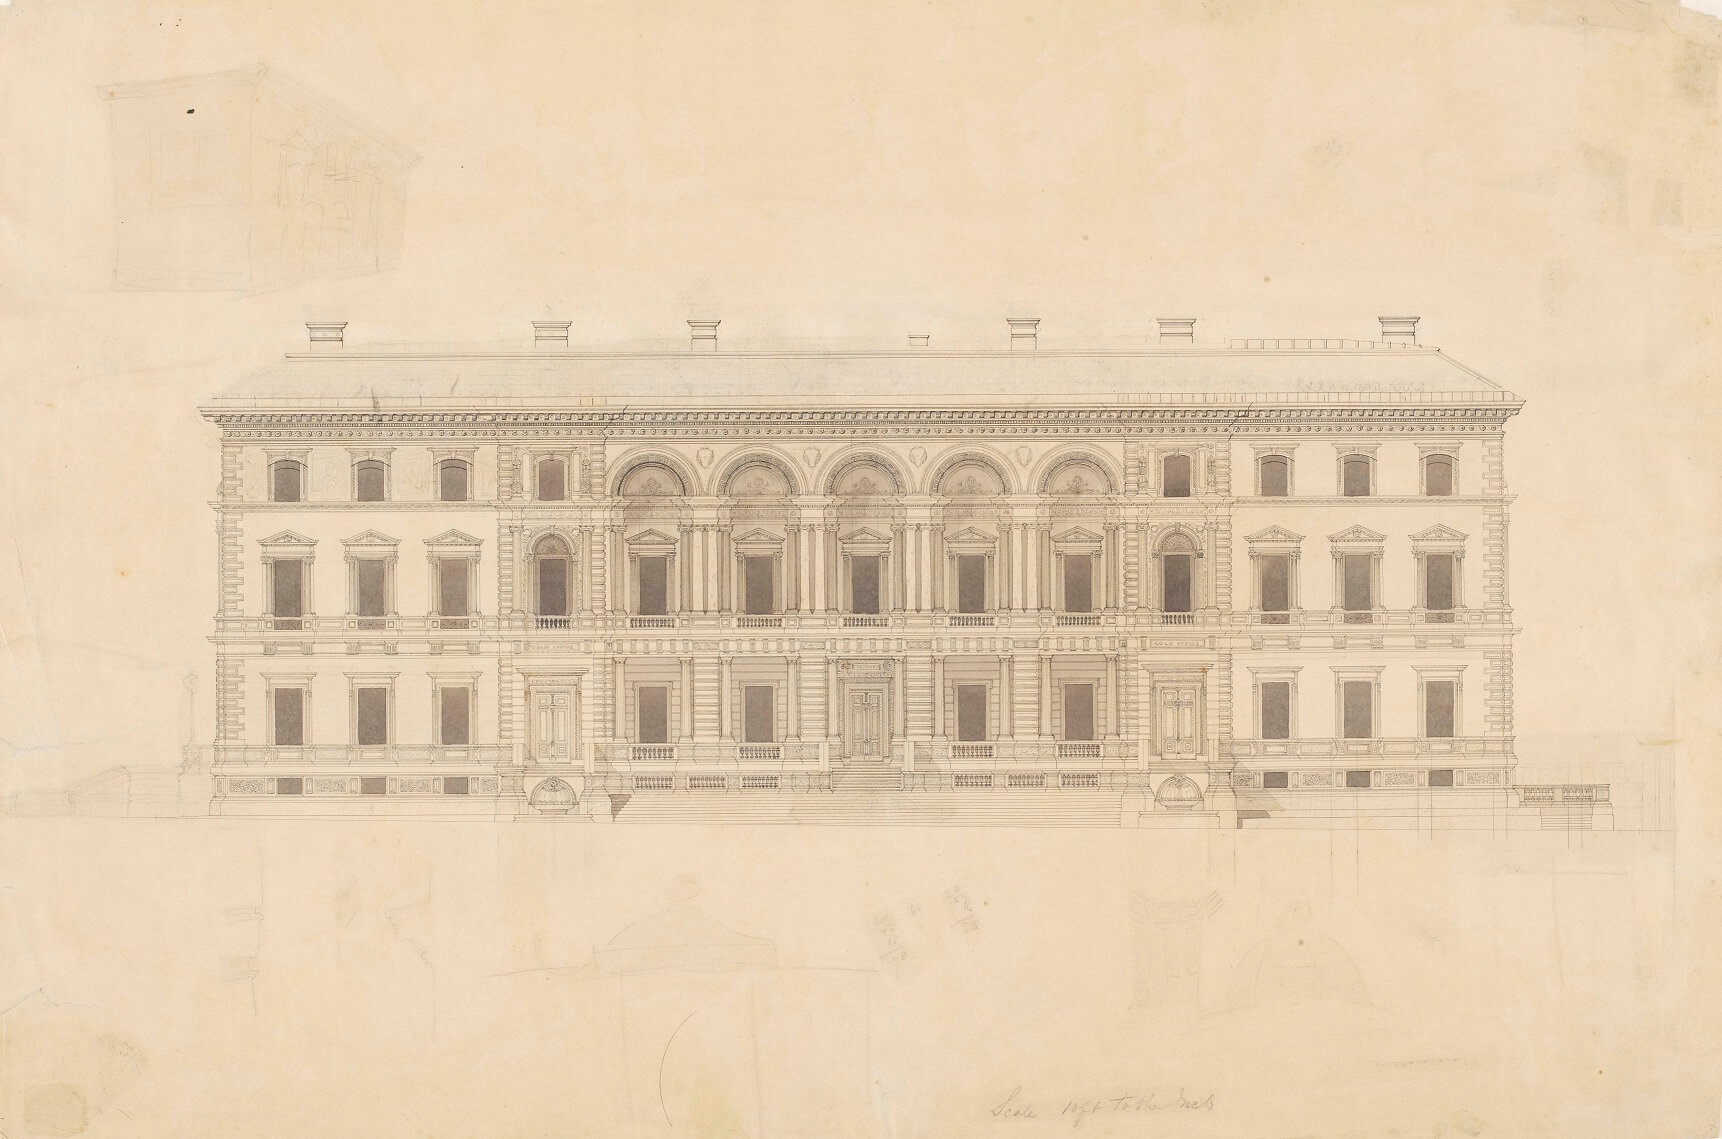 State Library of Victoria image.